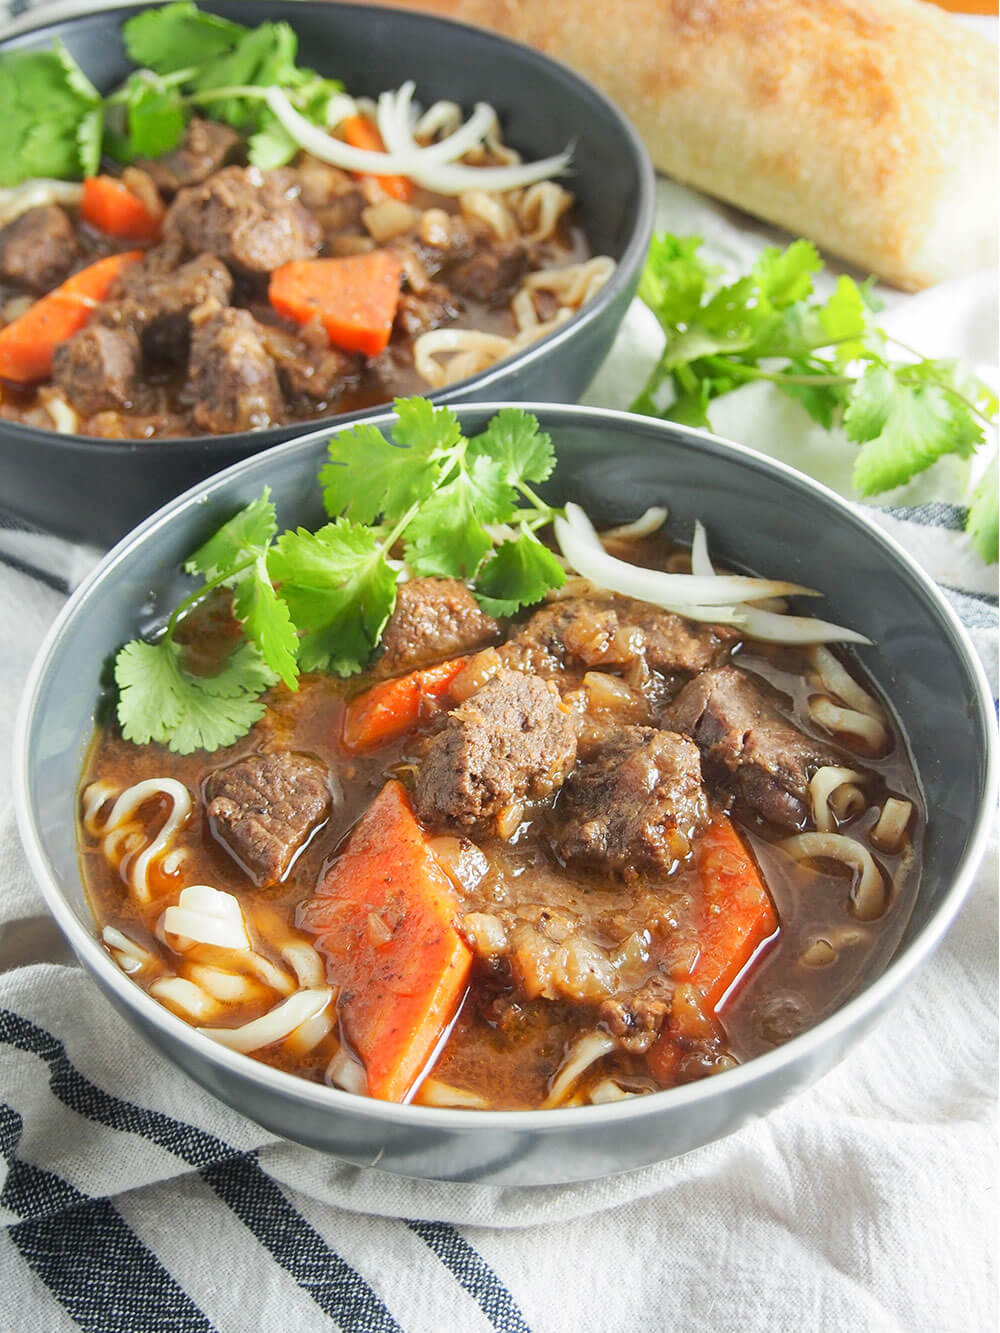 bo kho Vietnamese beef stew - two bowls served over noodles